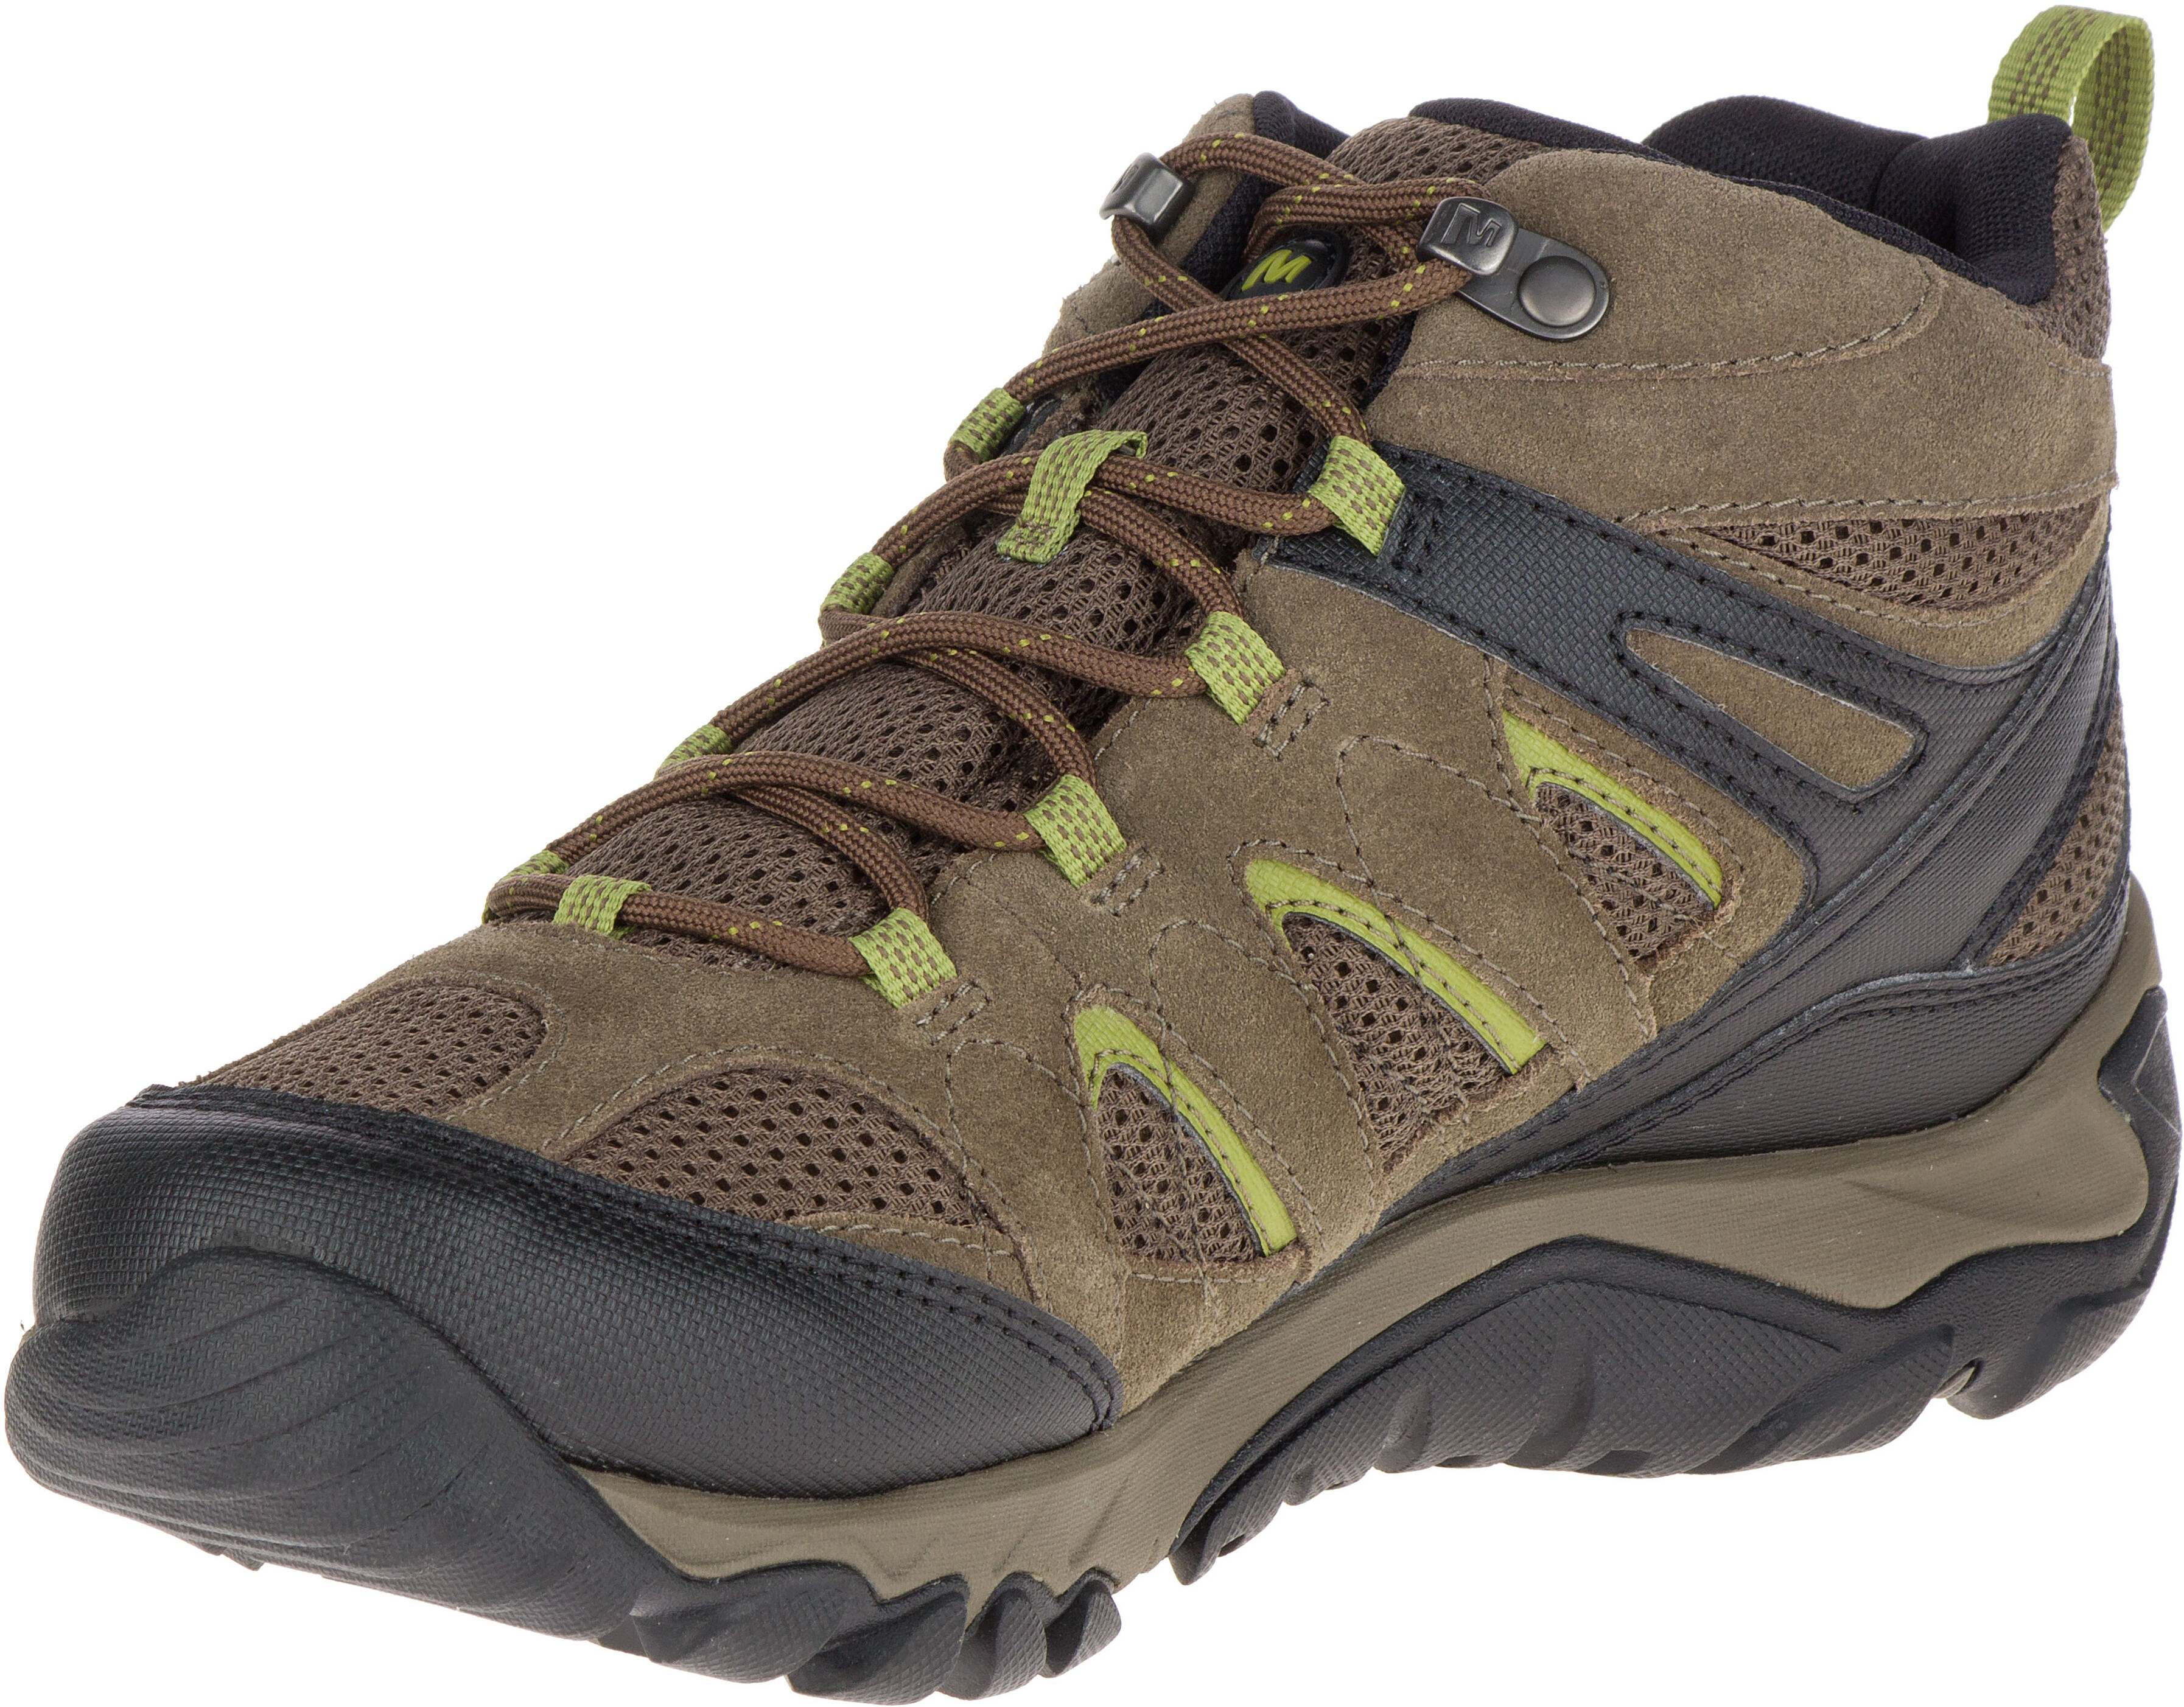 Merrell Outmost MID Vent GTX - Chaussures Homme - marron sur CAMPZ ! 0e1ee13edc25